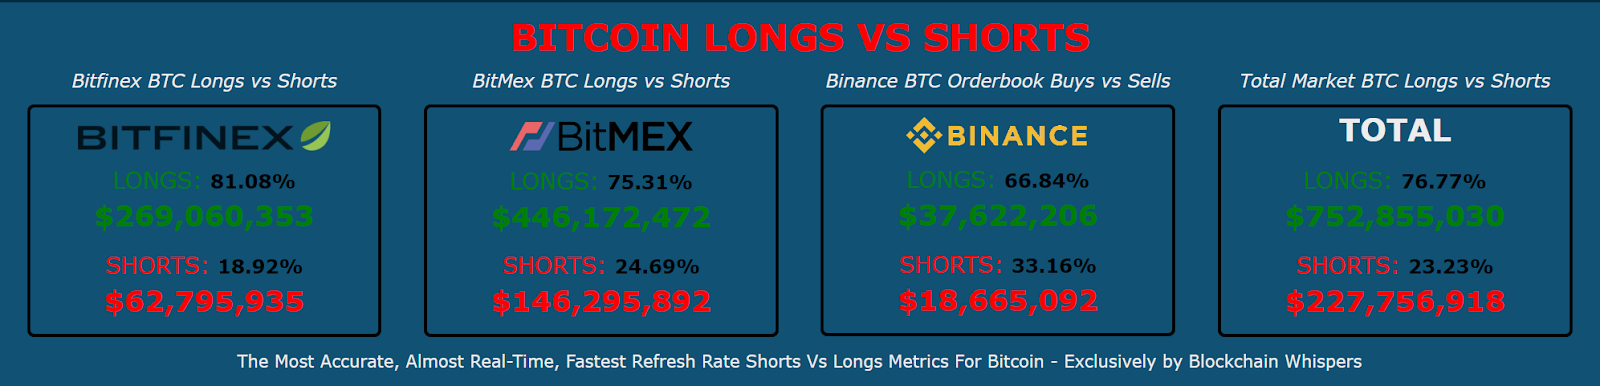 Total Bitcoin longs and shorts. Source: Blockchain Whispers